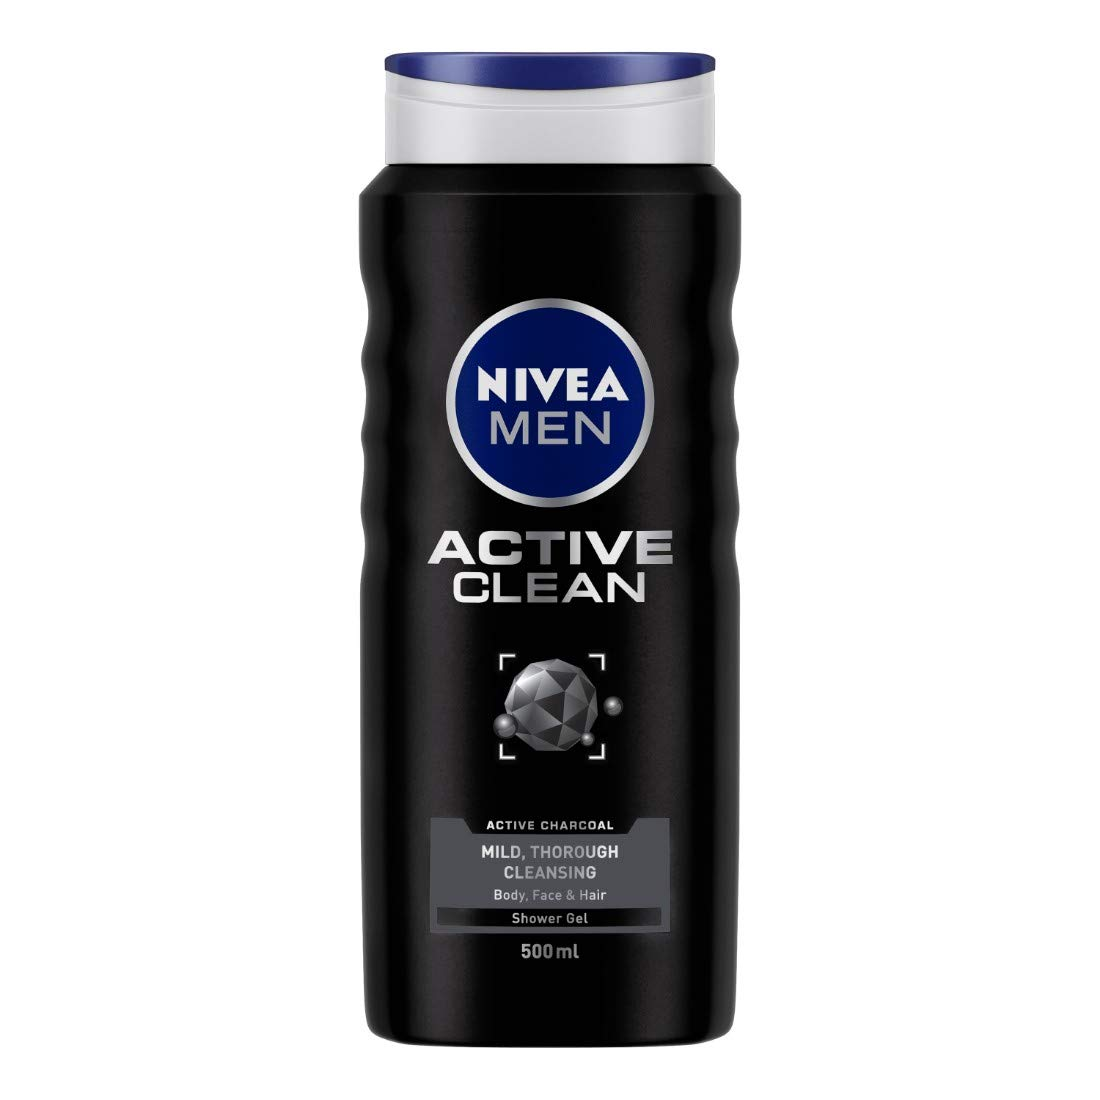 Buy NIVEA MEN Hair, Face & Body Wash, Active Clean Shower Gel